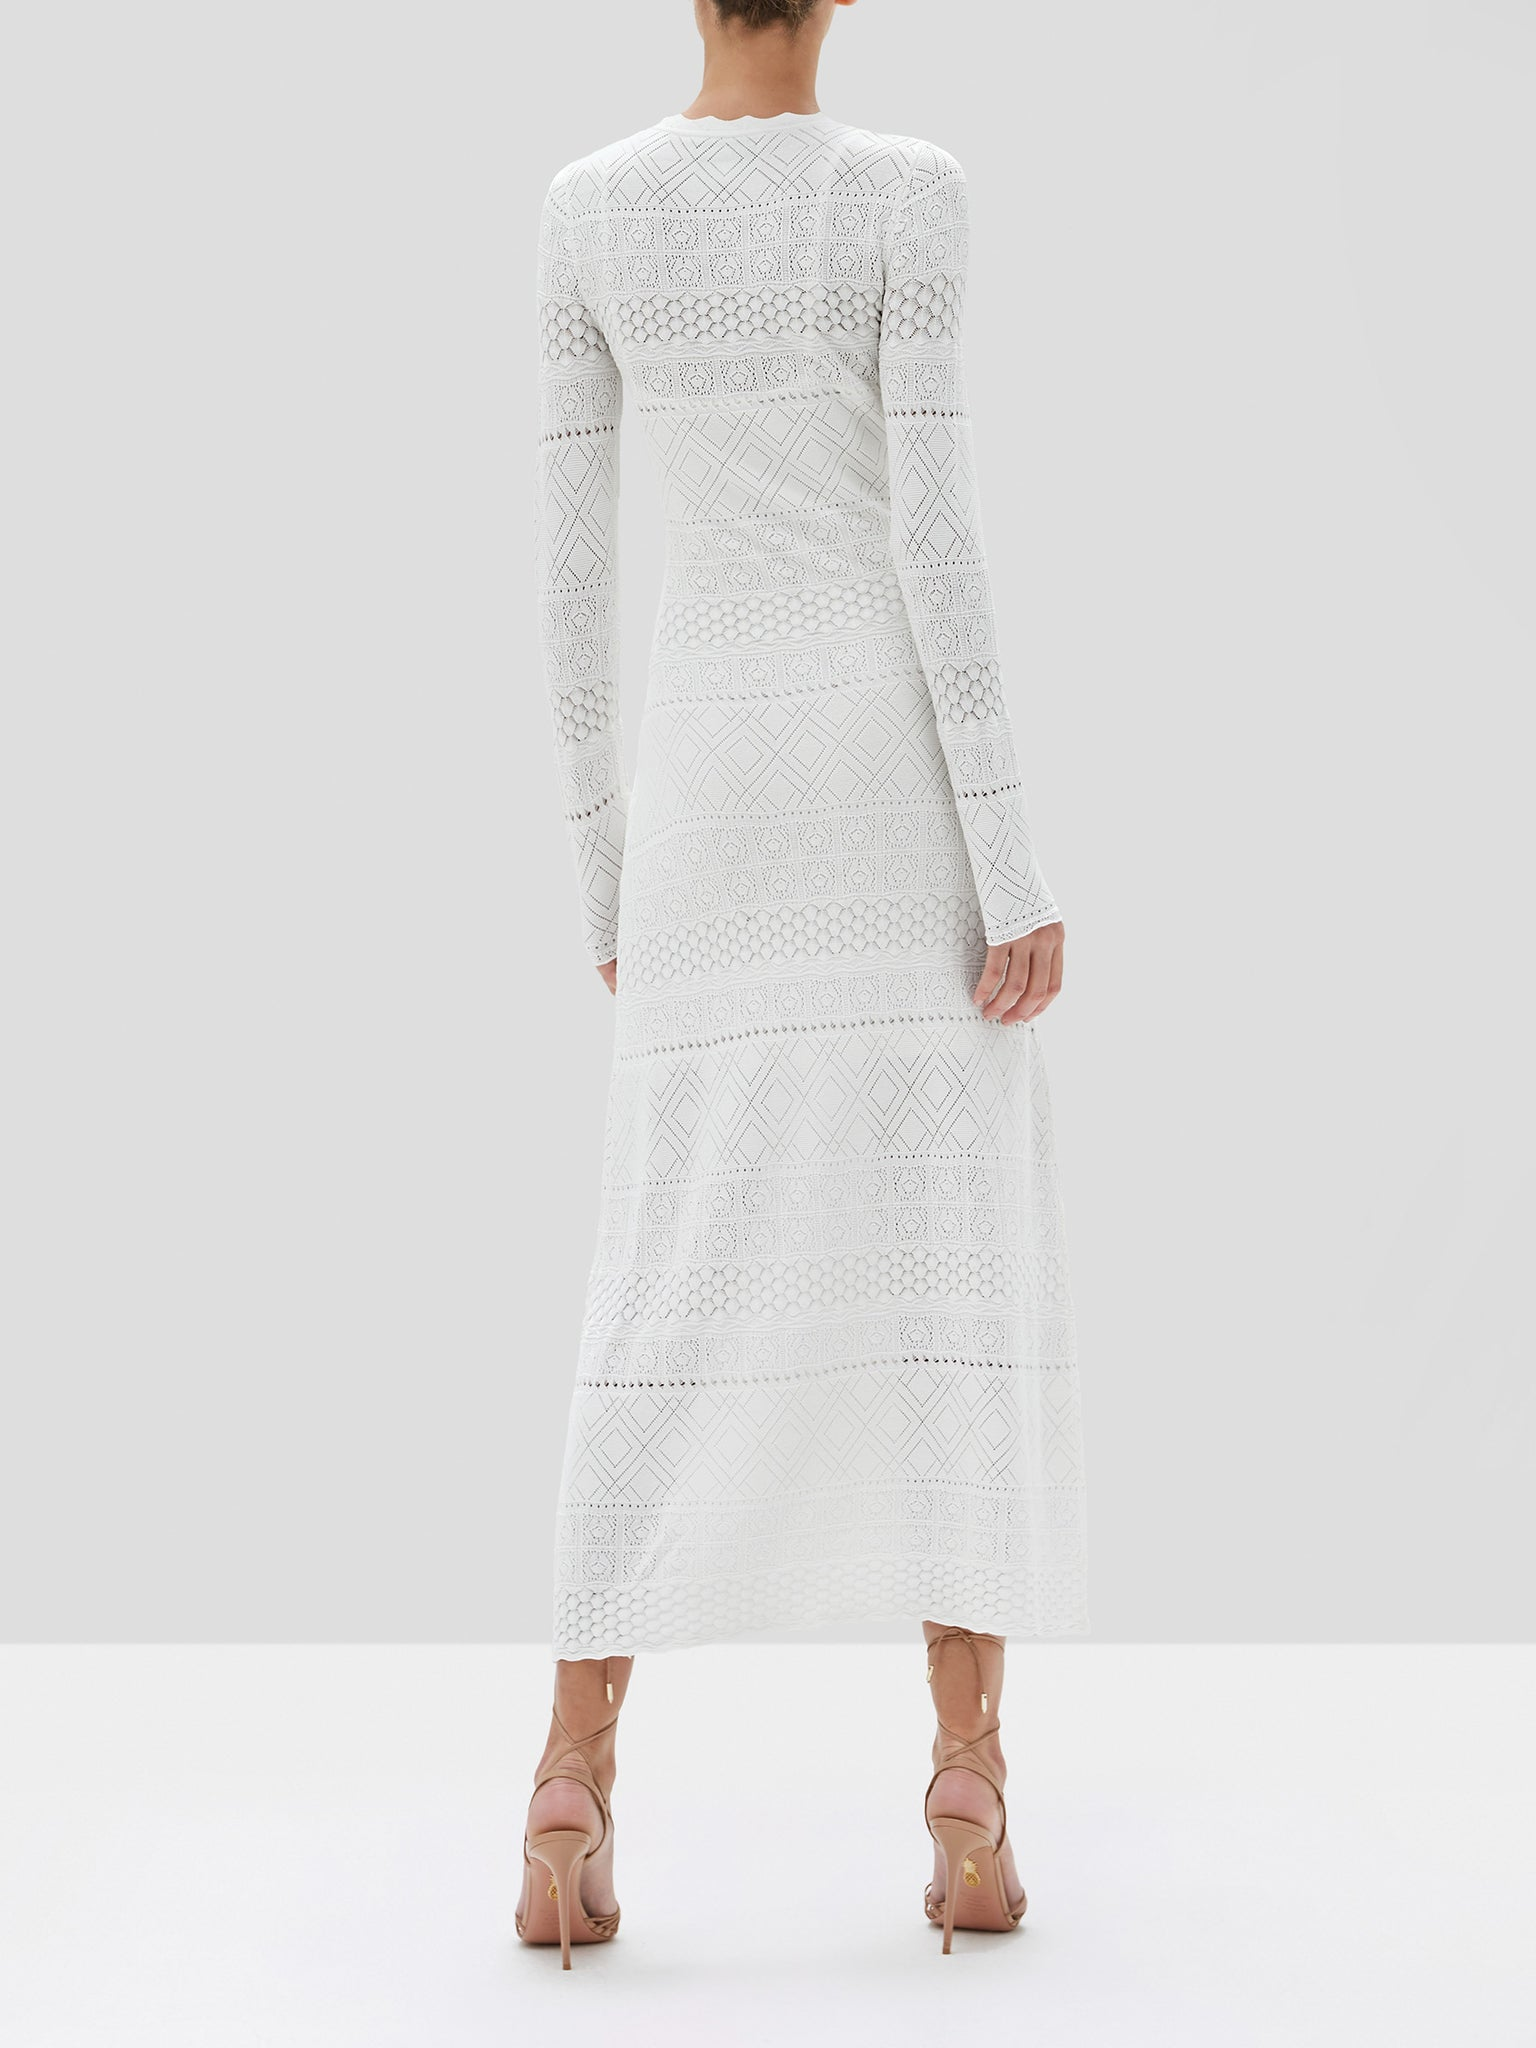 Volta dress in white front - Rear View